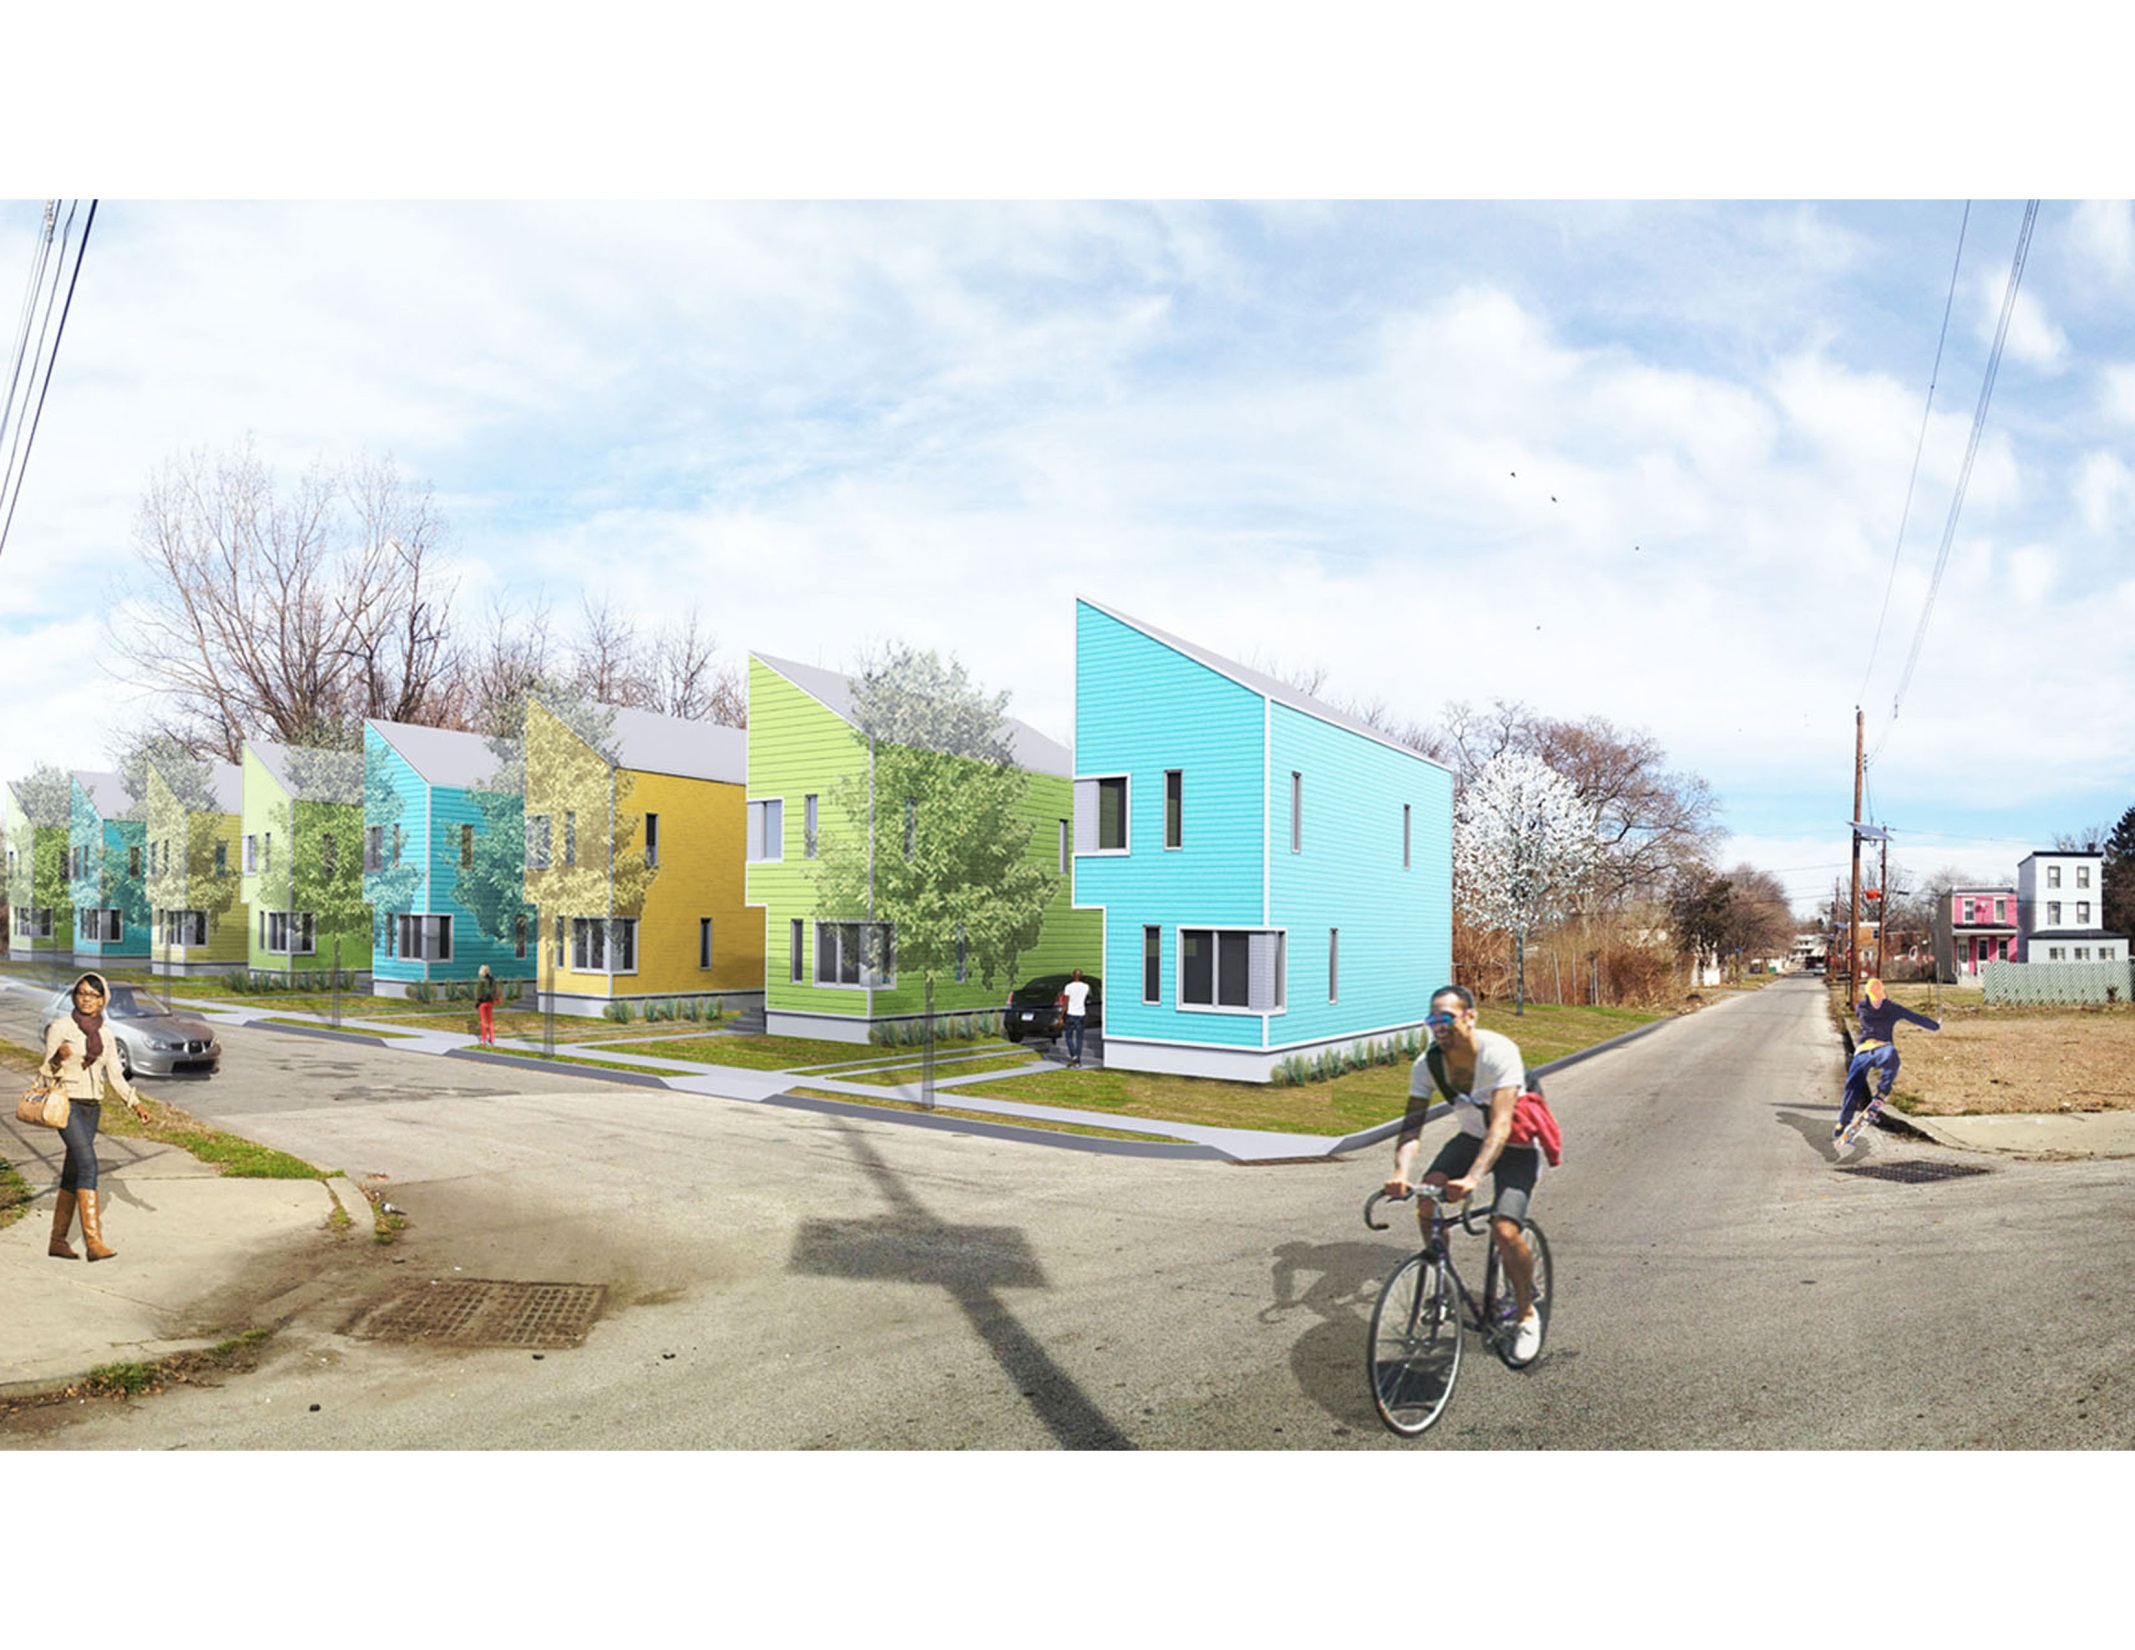 design awards aia new jersey page 3 da2014 isa2